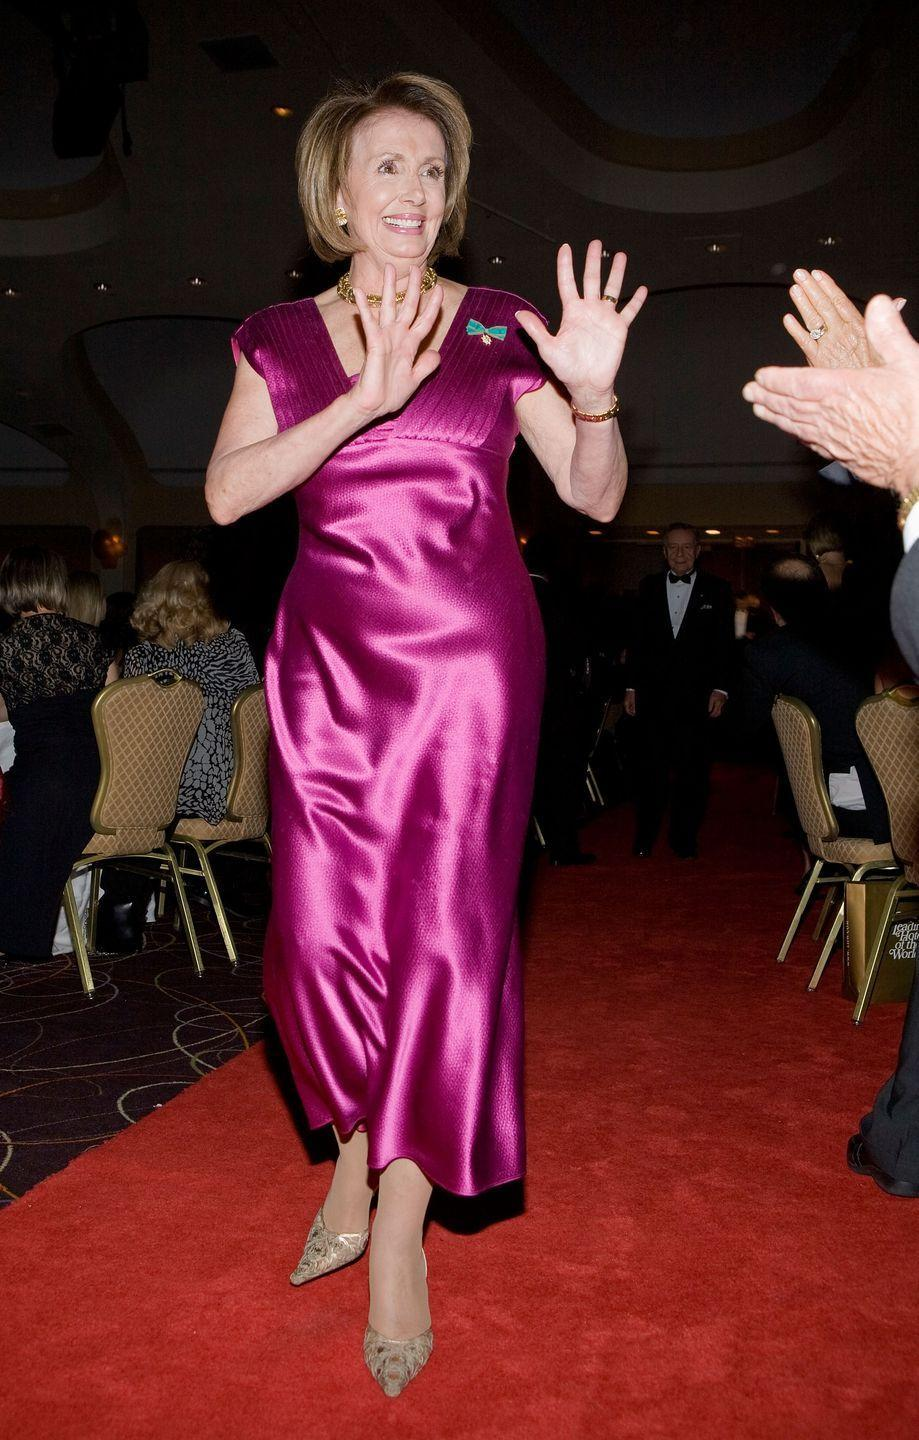 <p>Pelosi attends the National Italian American Foundation (NIAF) 33rd Anniversary Awards in Washington, D.C. </p>